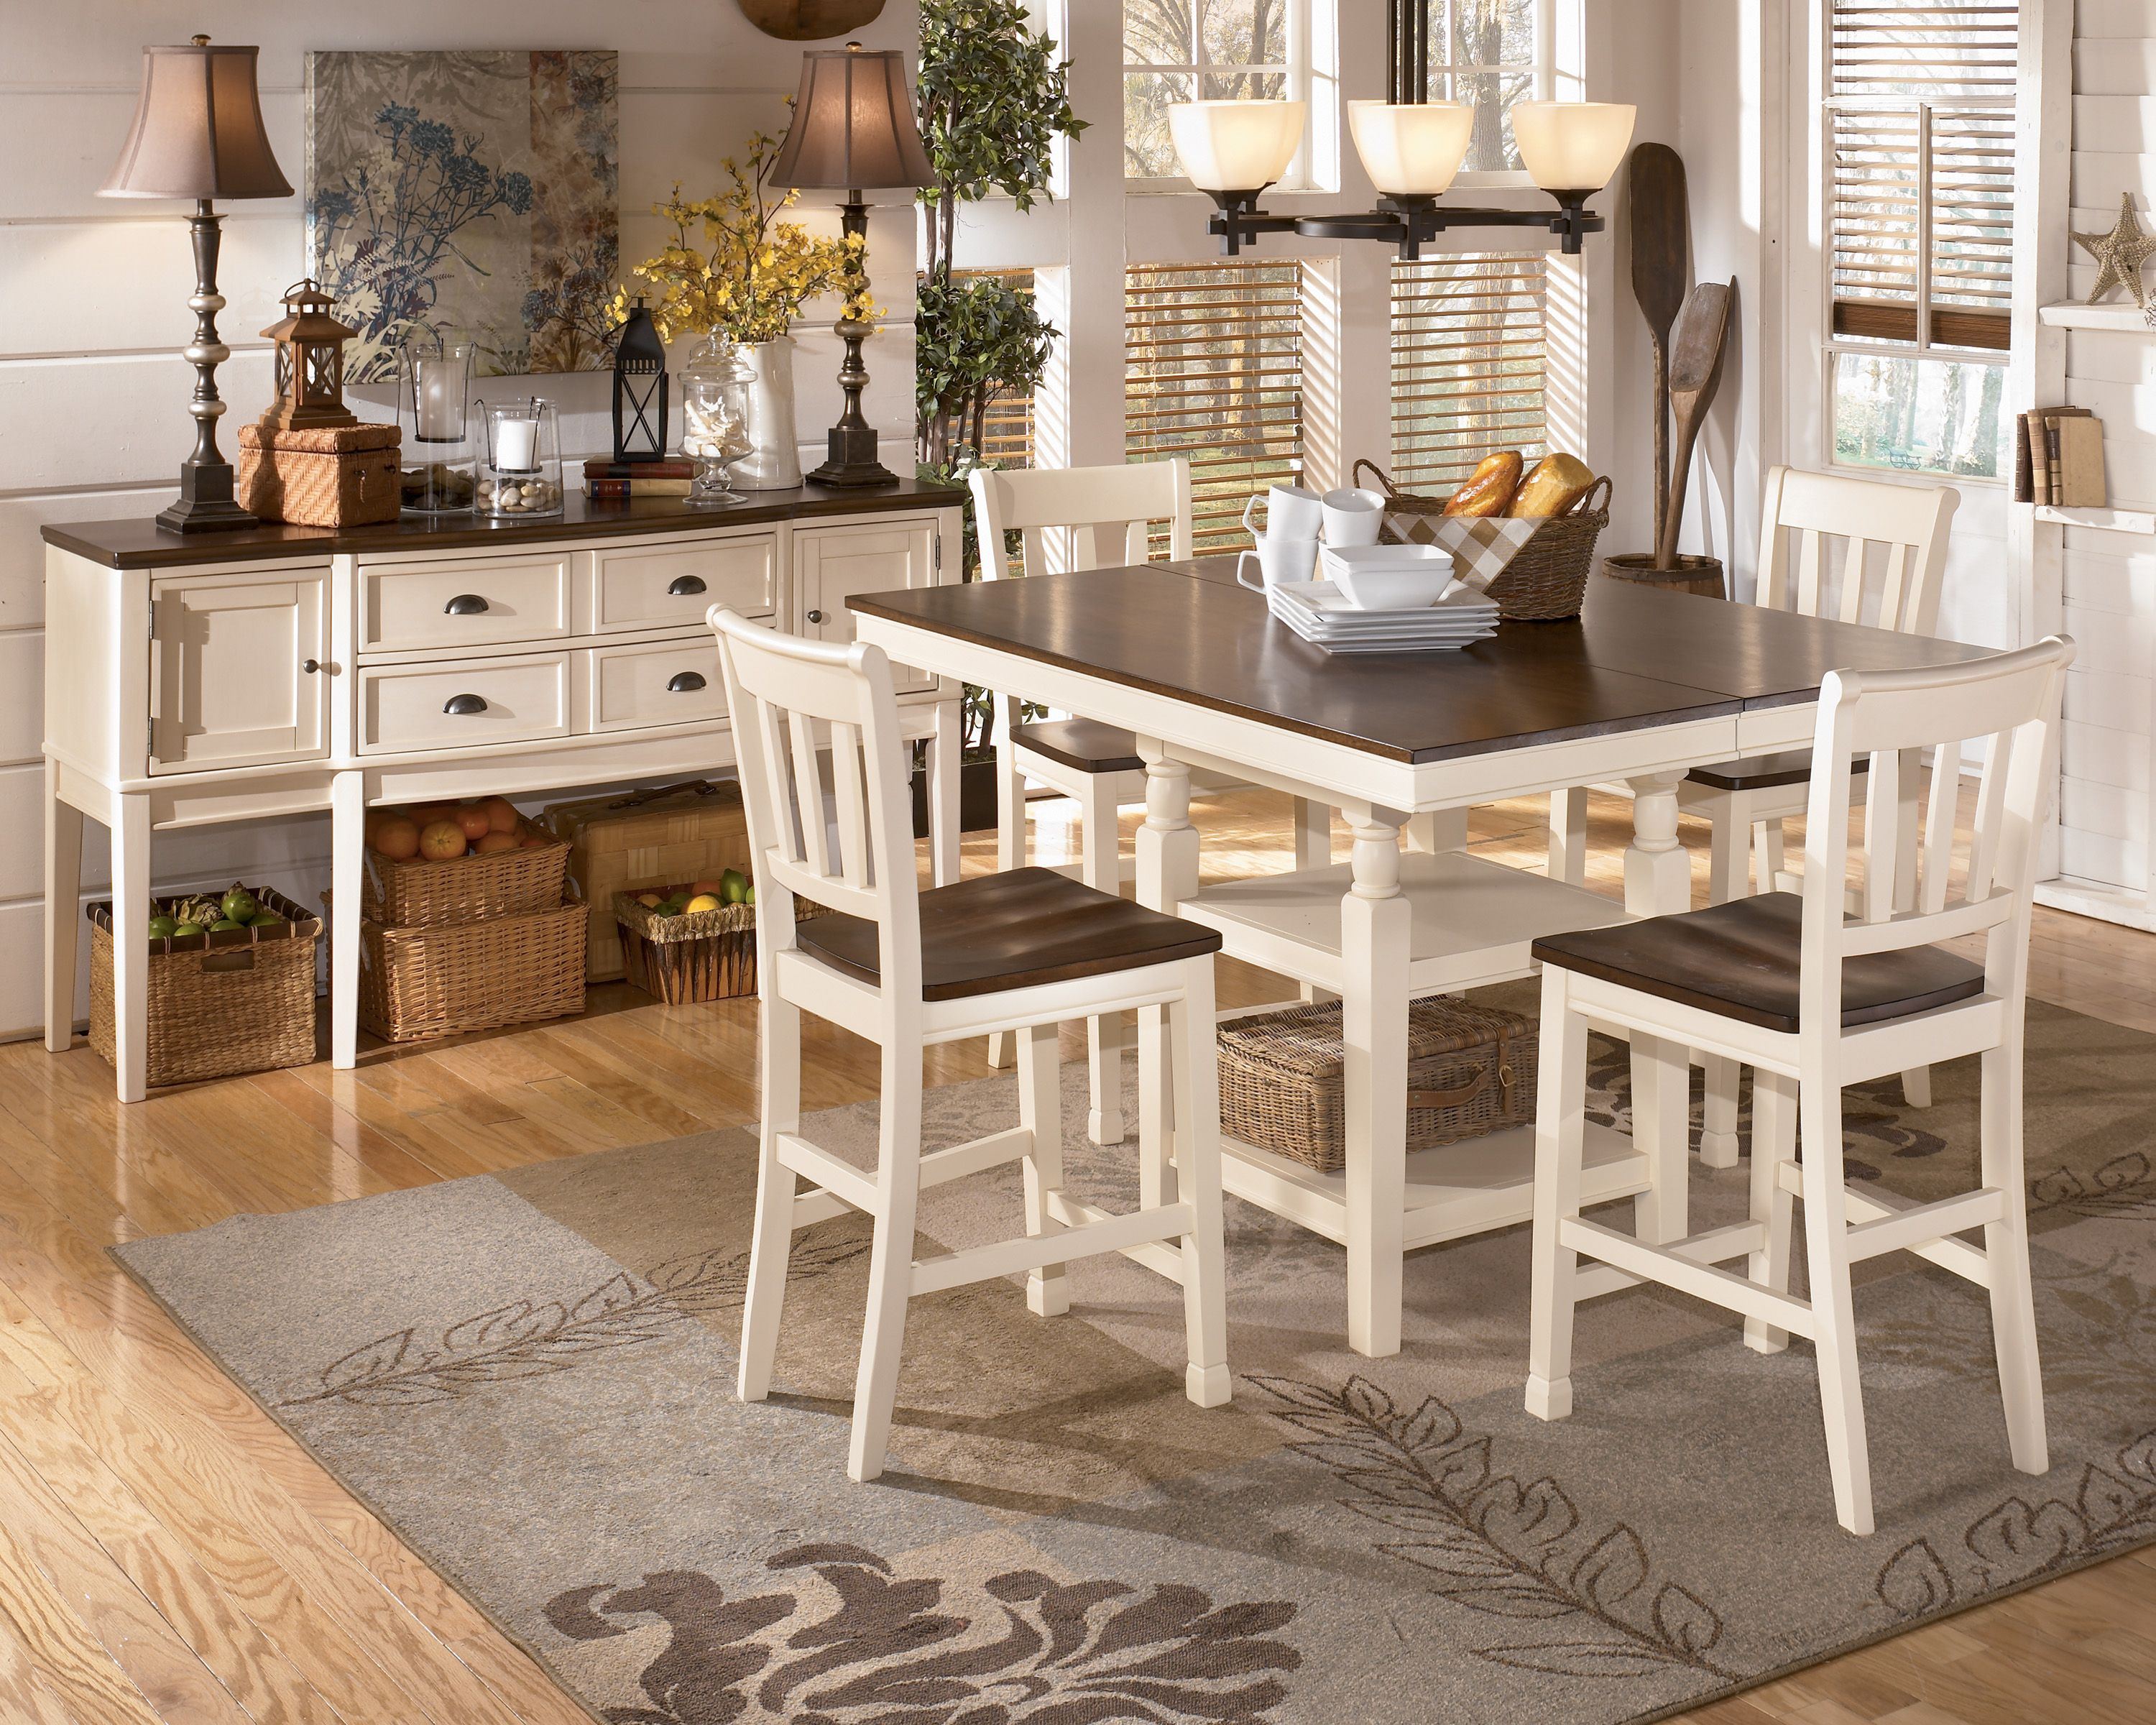 Sku D583 32 224 4 60 T Casual Pub Table Set Cottage White Brown Square Pub Table An Dining Room Sets Square Kitchen Tables Counter Height Dining Room Tables